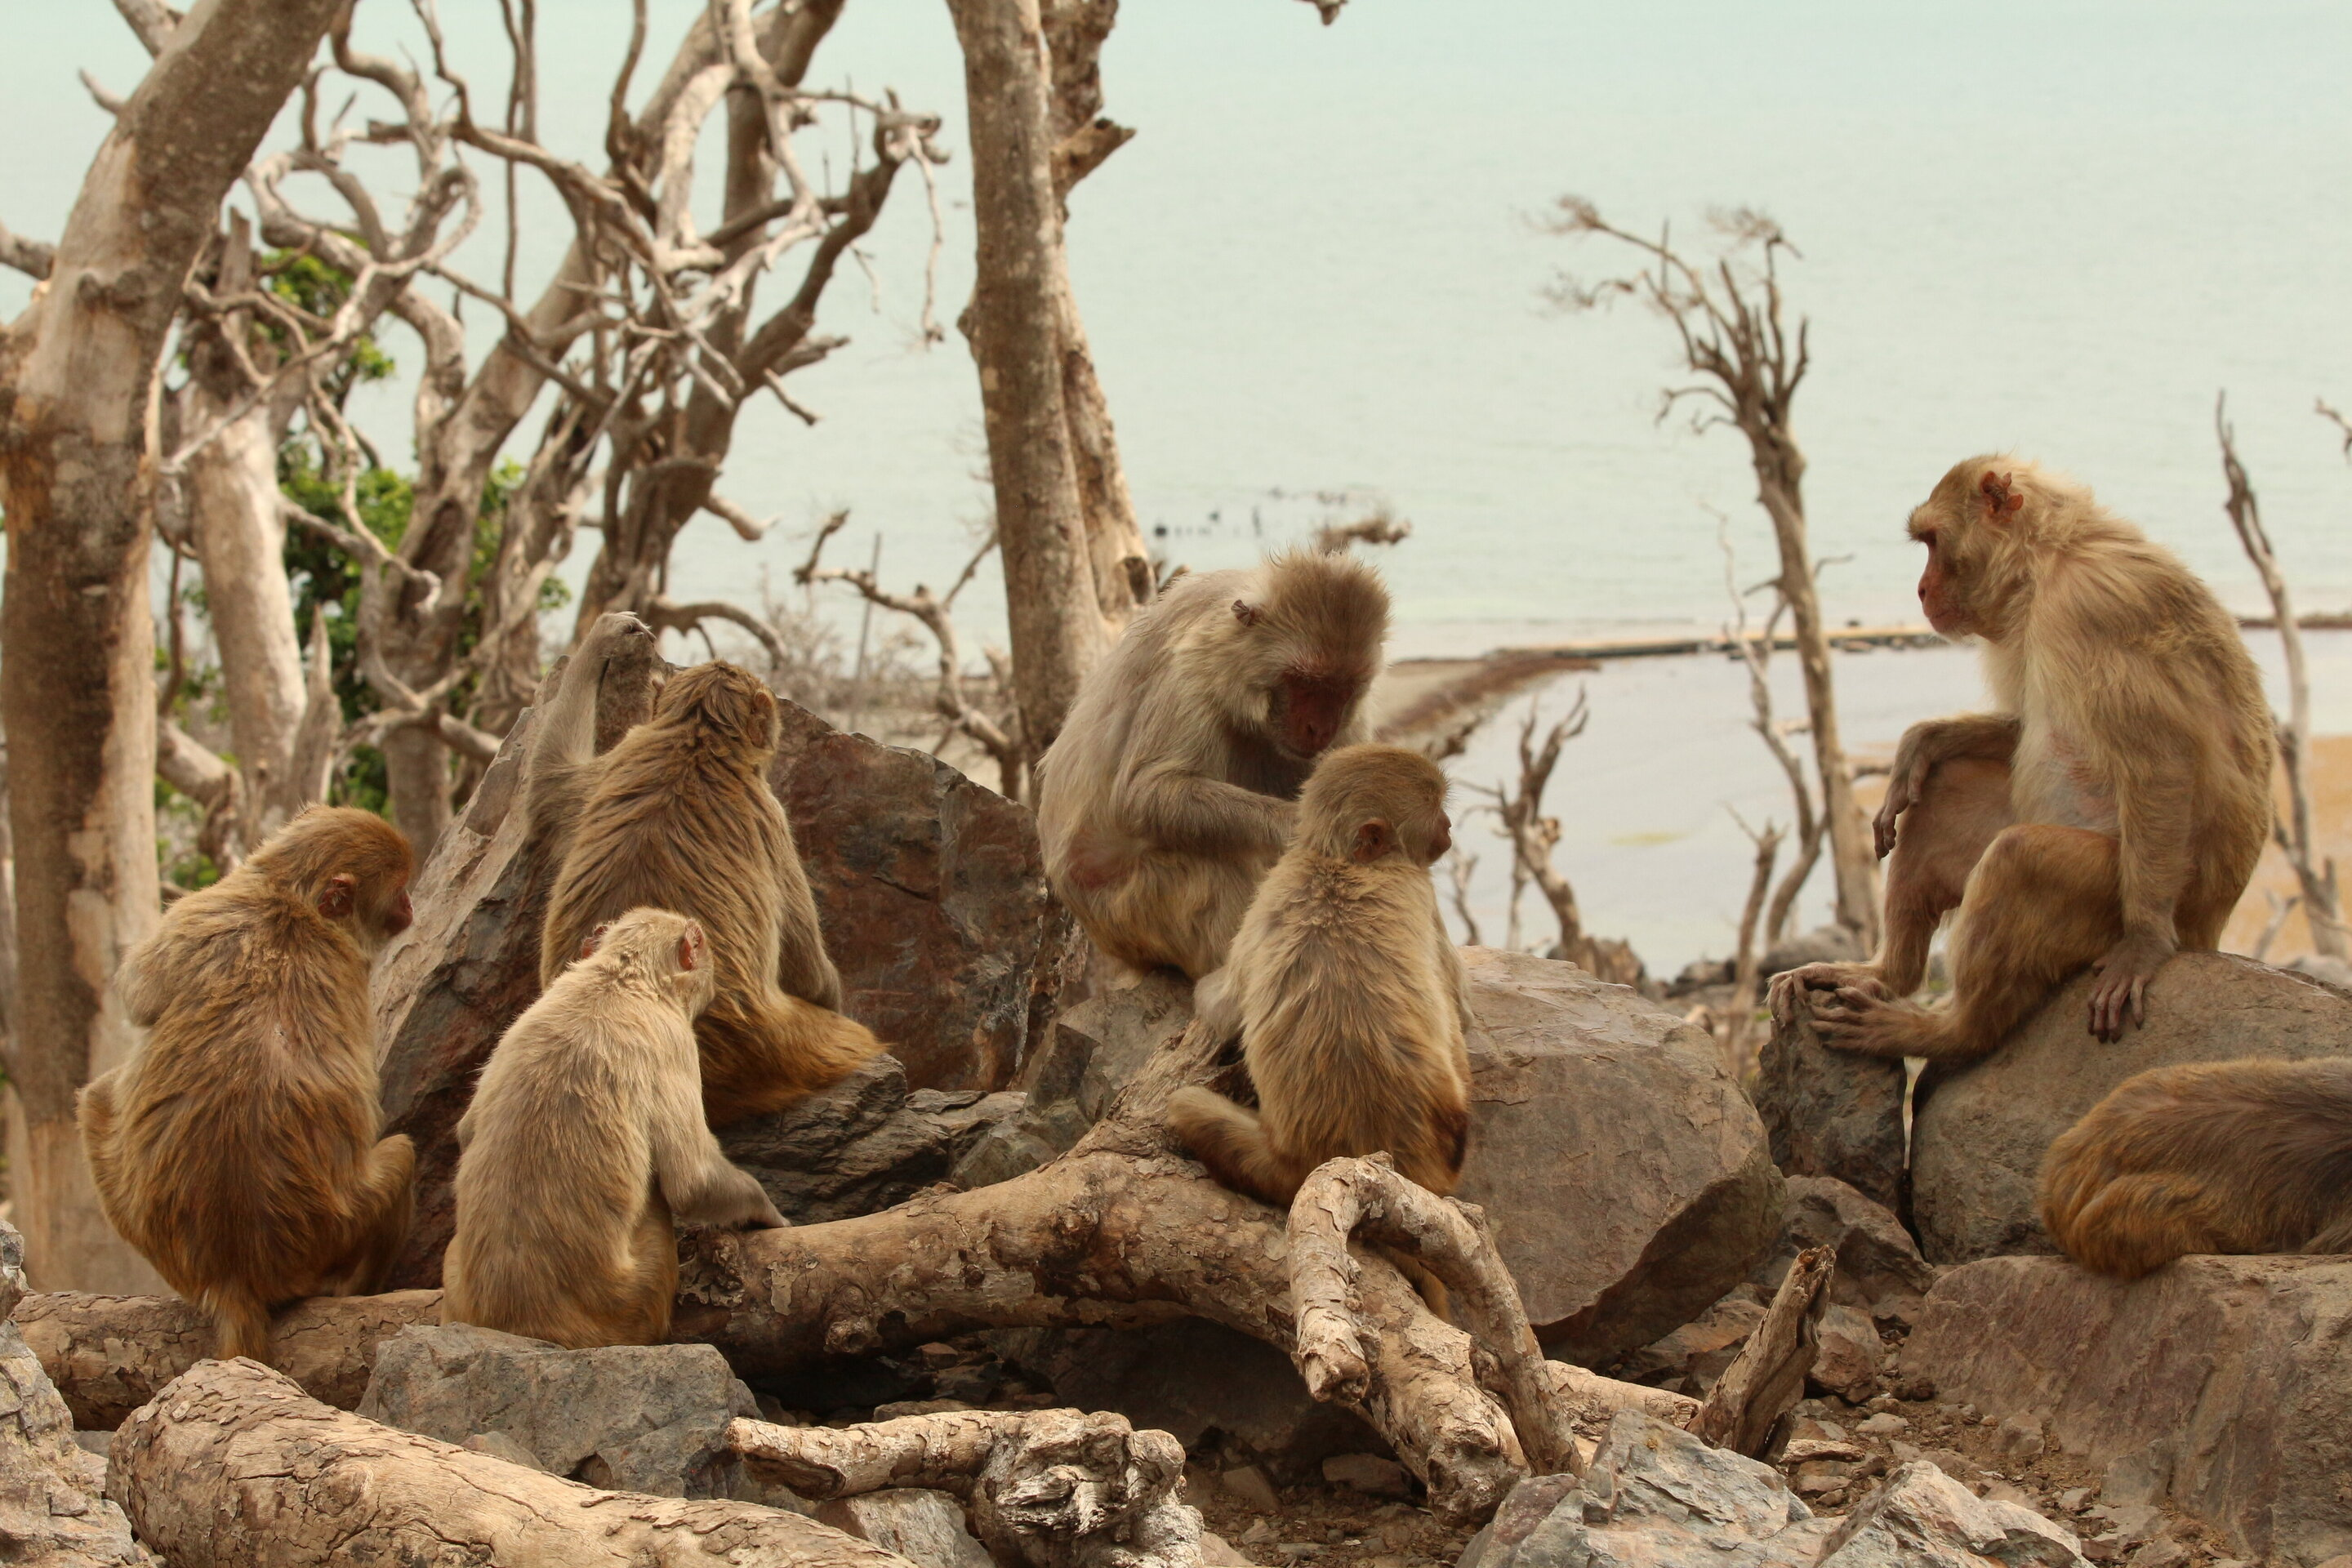 After Hurricane Maria, rhesus macaques in Puerto Rico sought out new social relationships